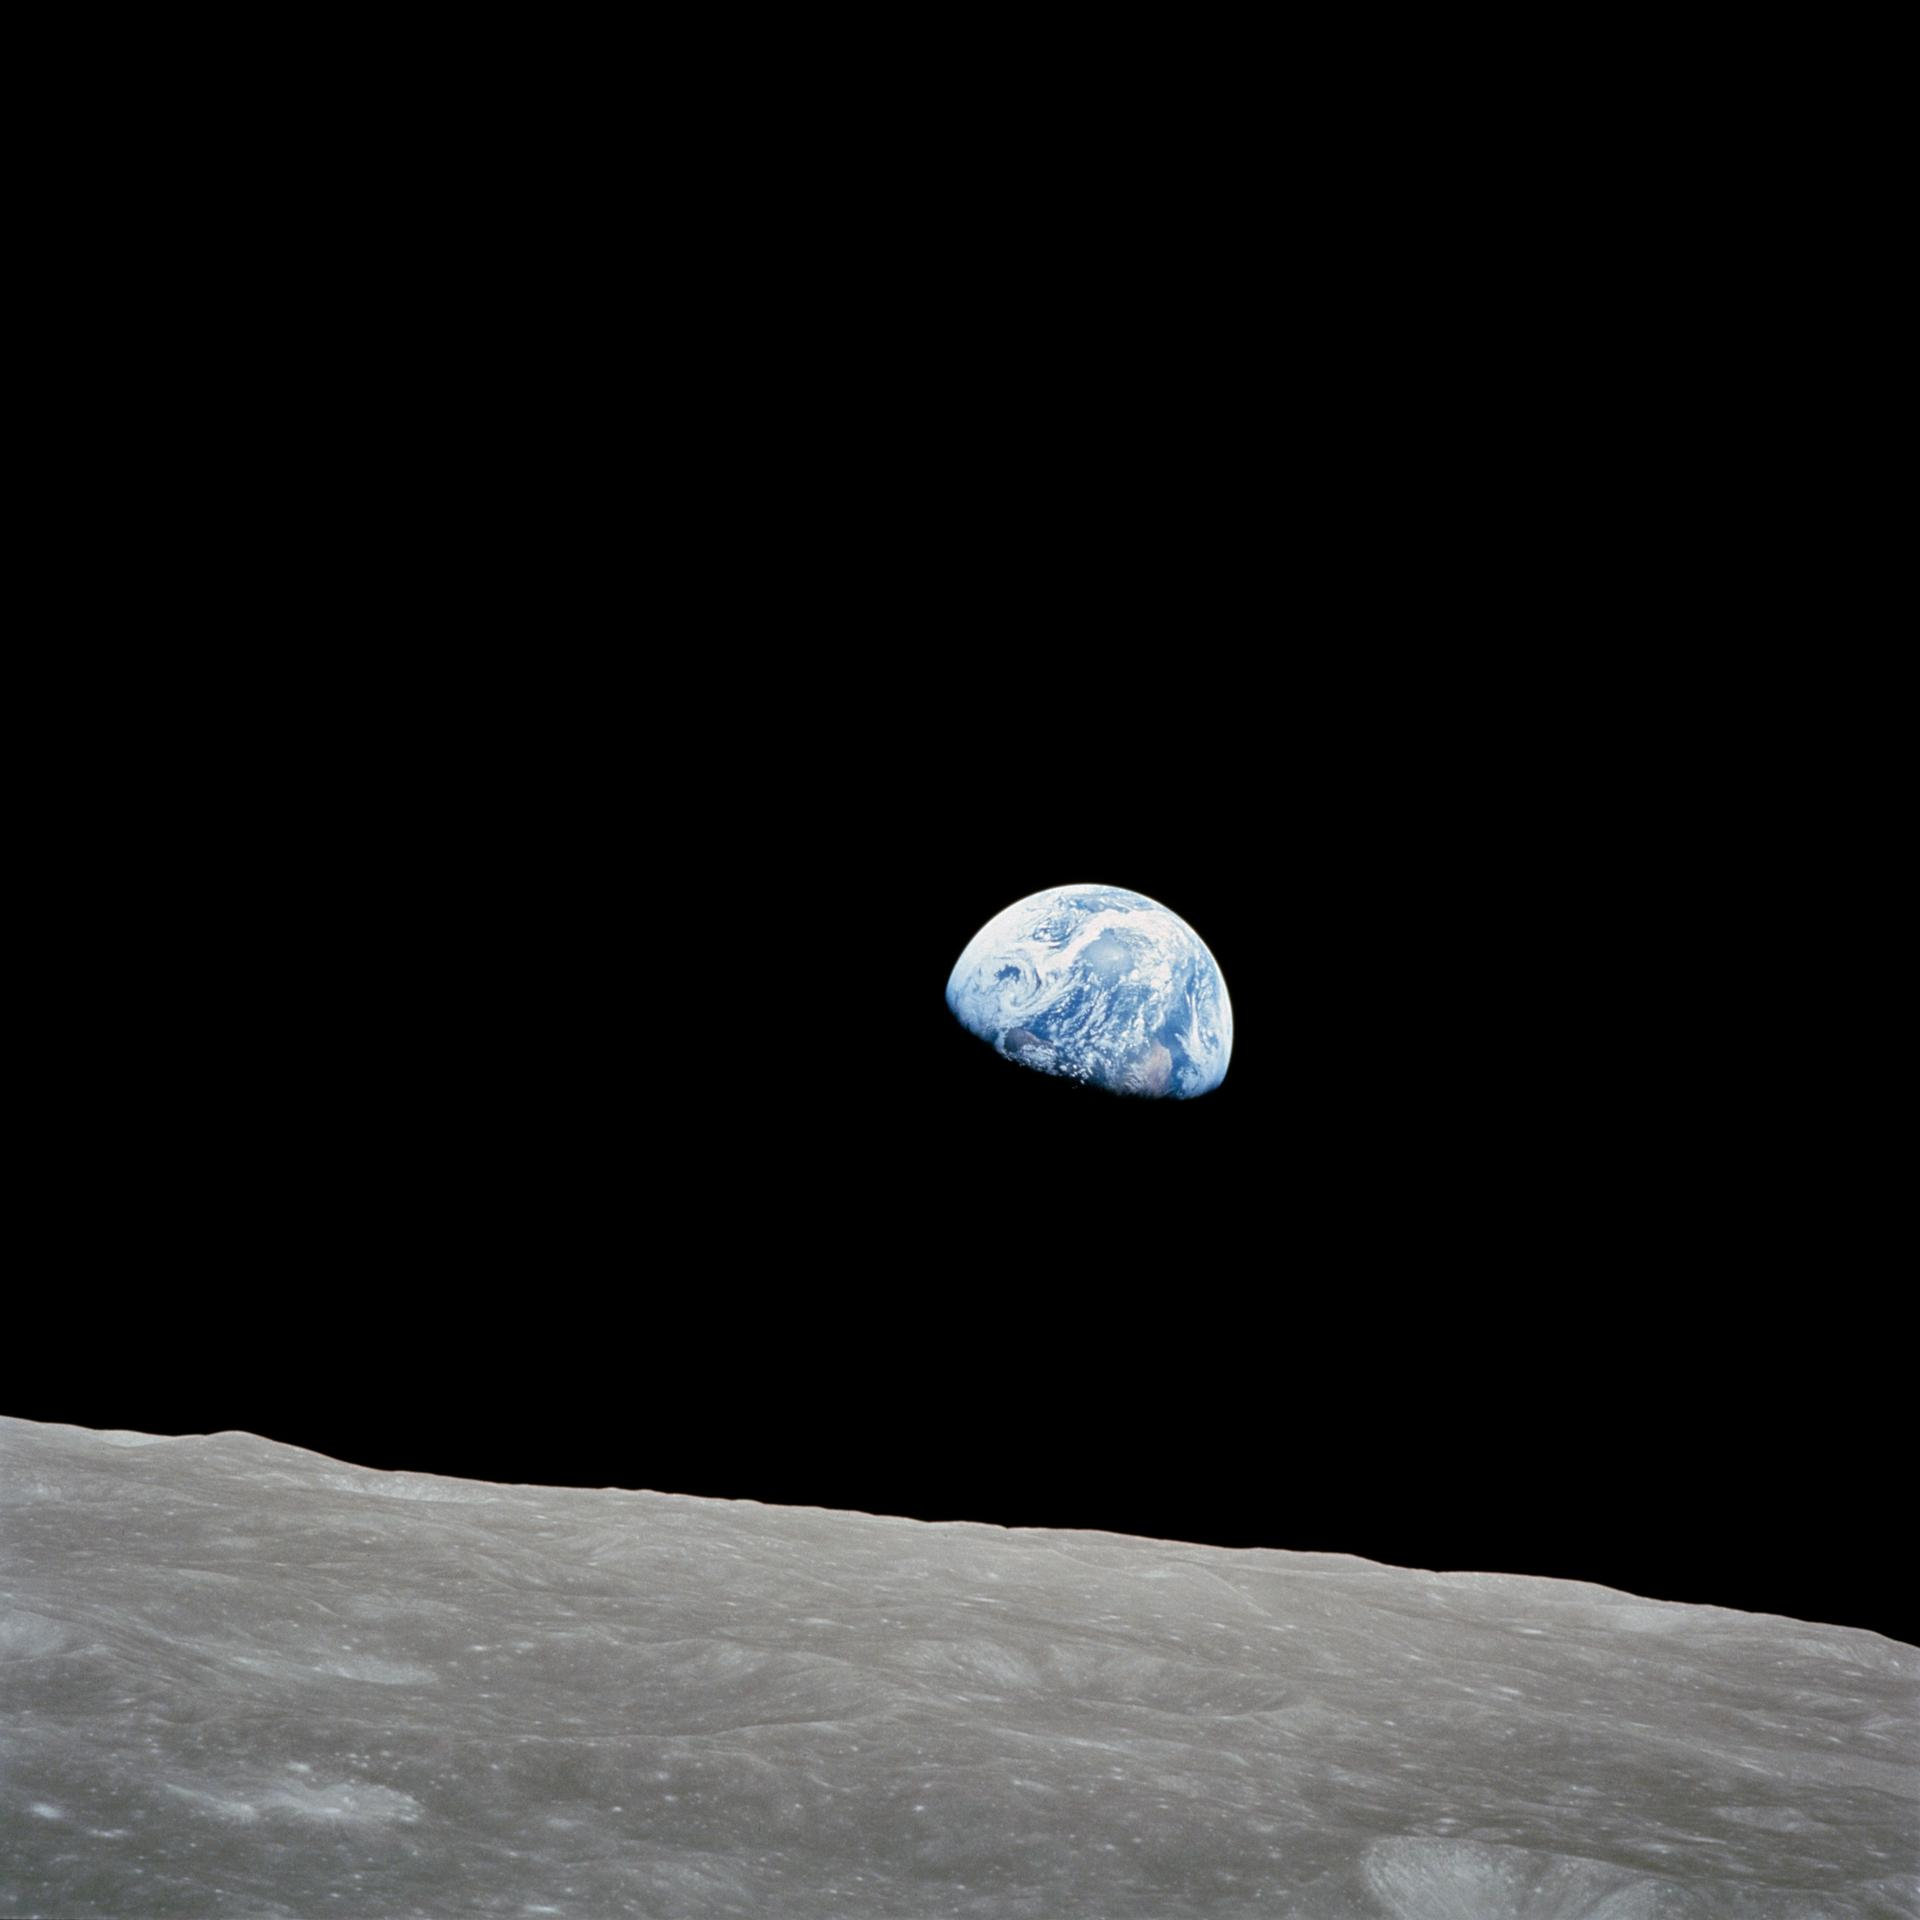 (24 Dec. 1968) --- The rising Earth is about five degrees above the lunar horizon in this telephoto view taken from the Apollo 8 spacecraft near 110 degrees east longitude.